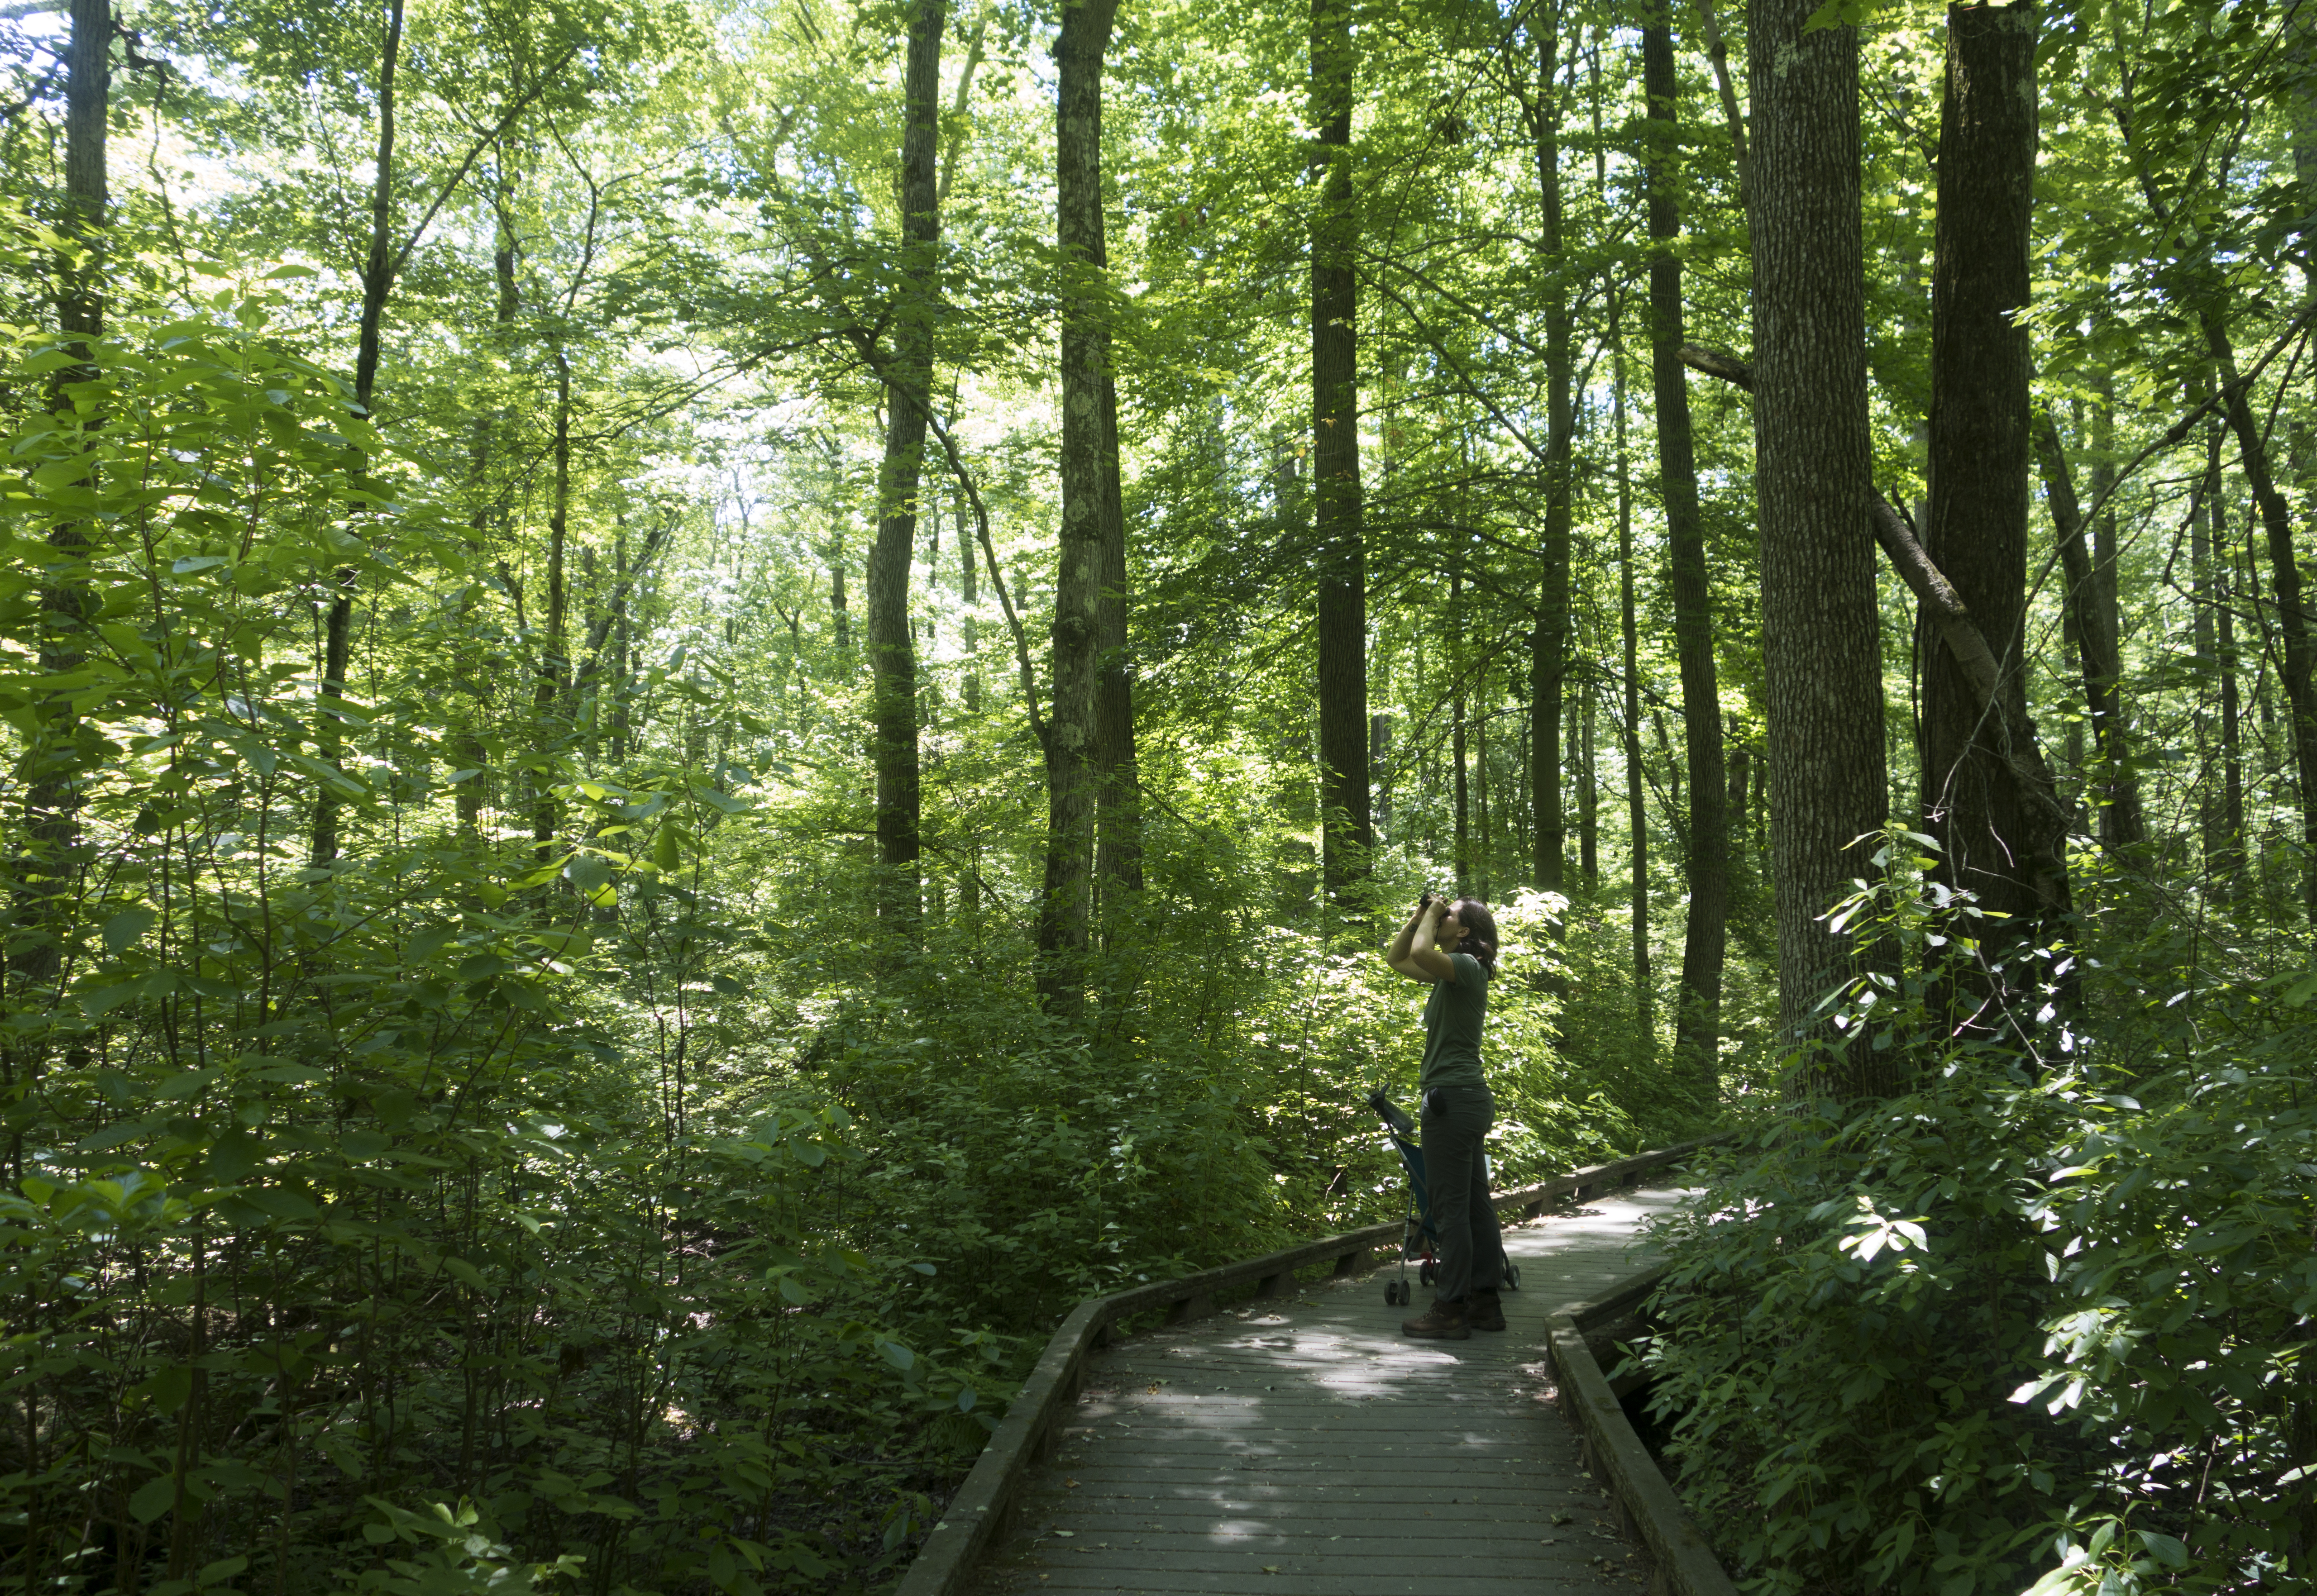 Woods with lush green vegetation and woman walking on wooden path